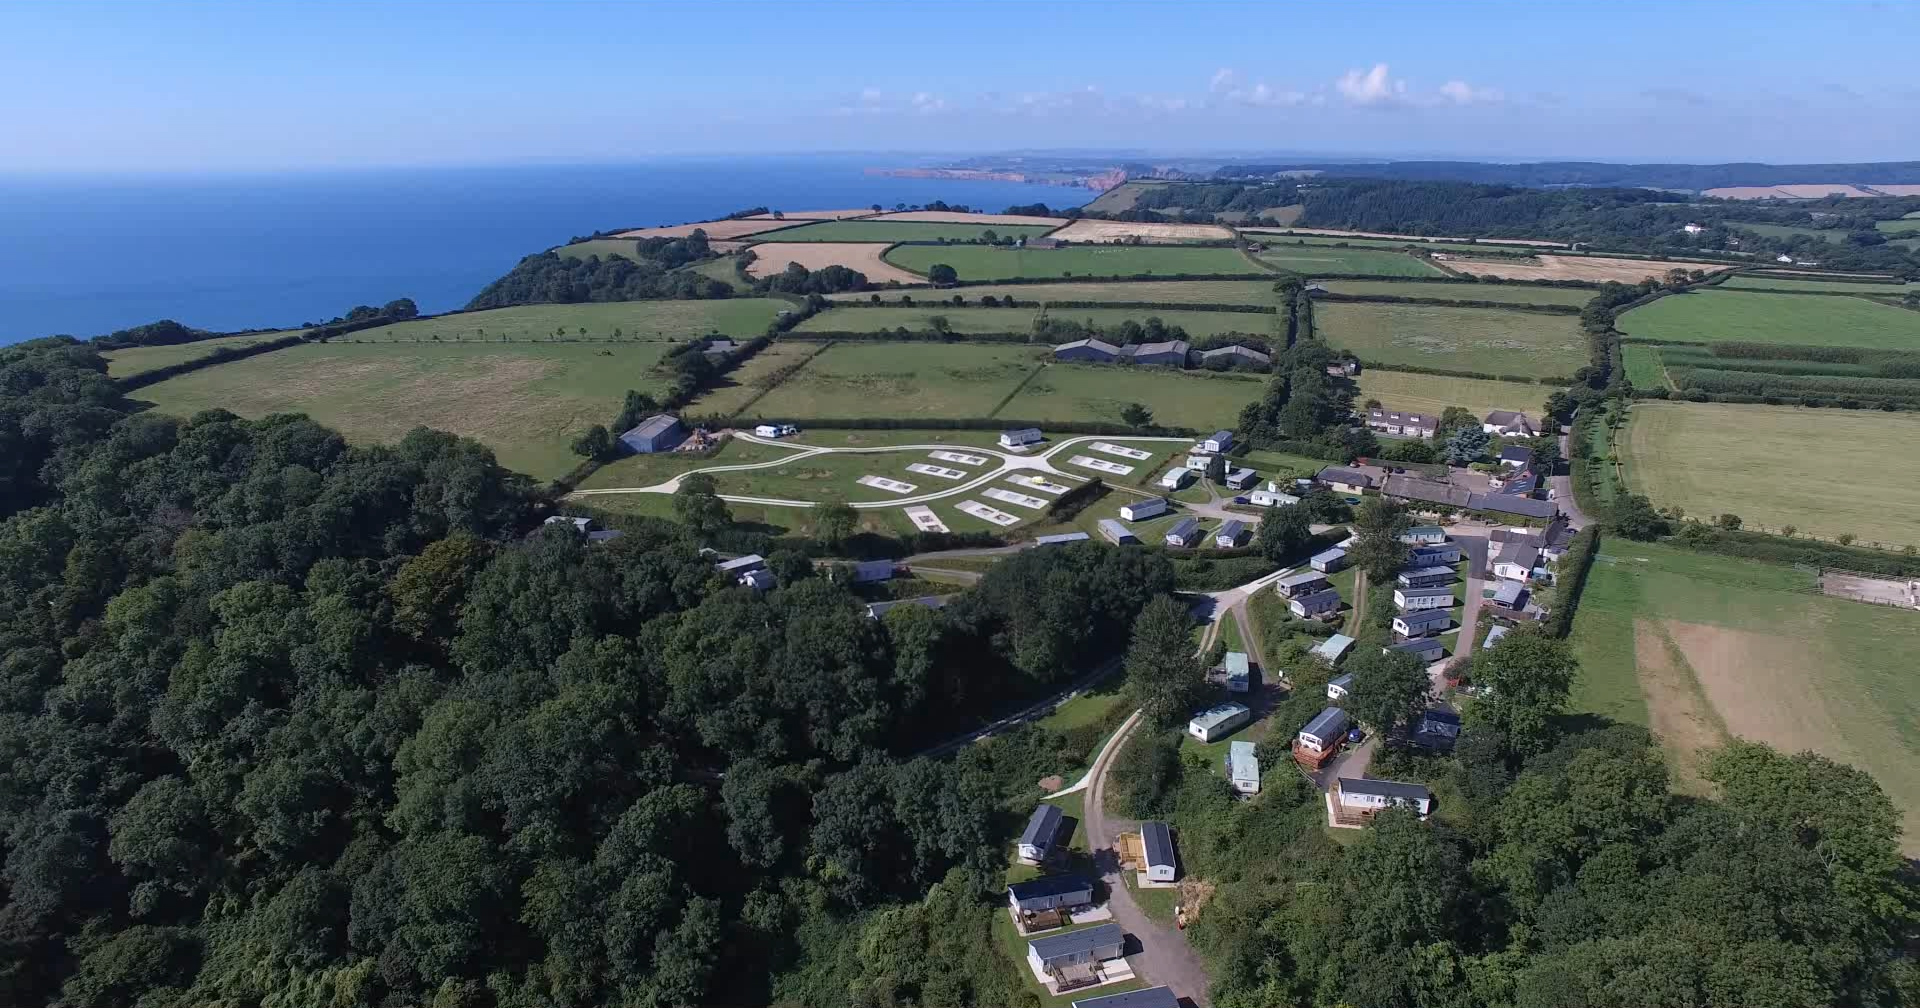 Local Attractions near Dunscombe Manor Caravan Park